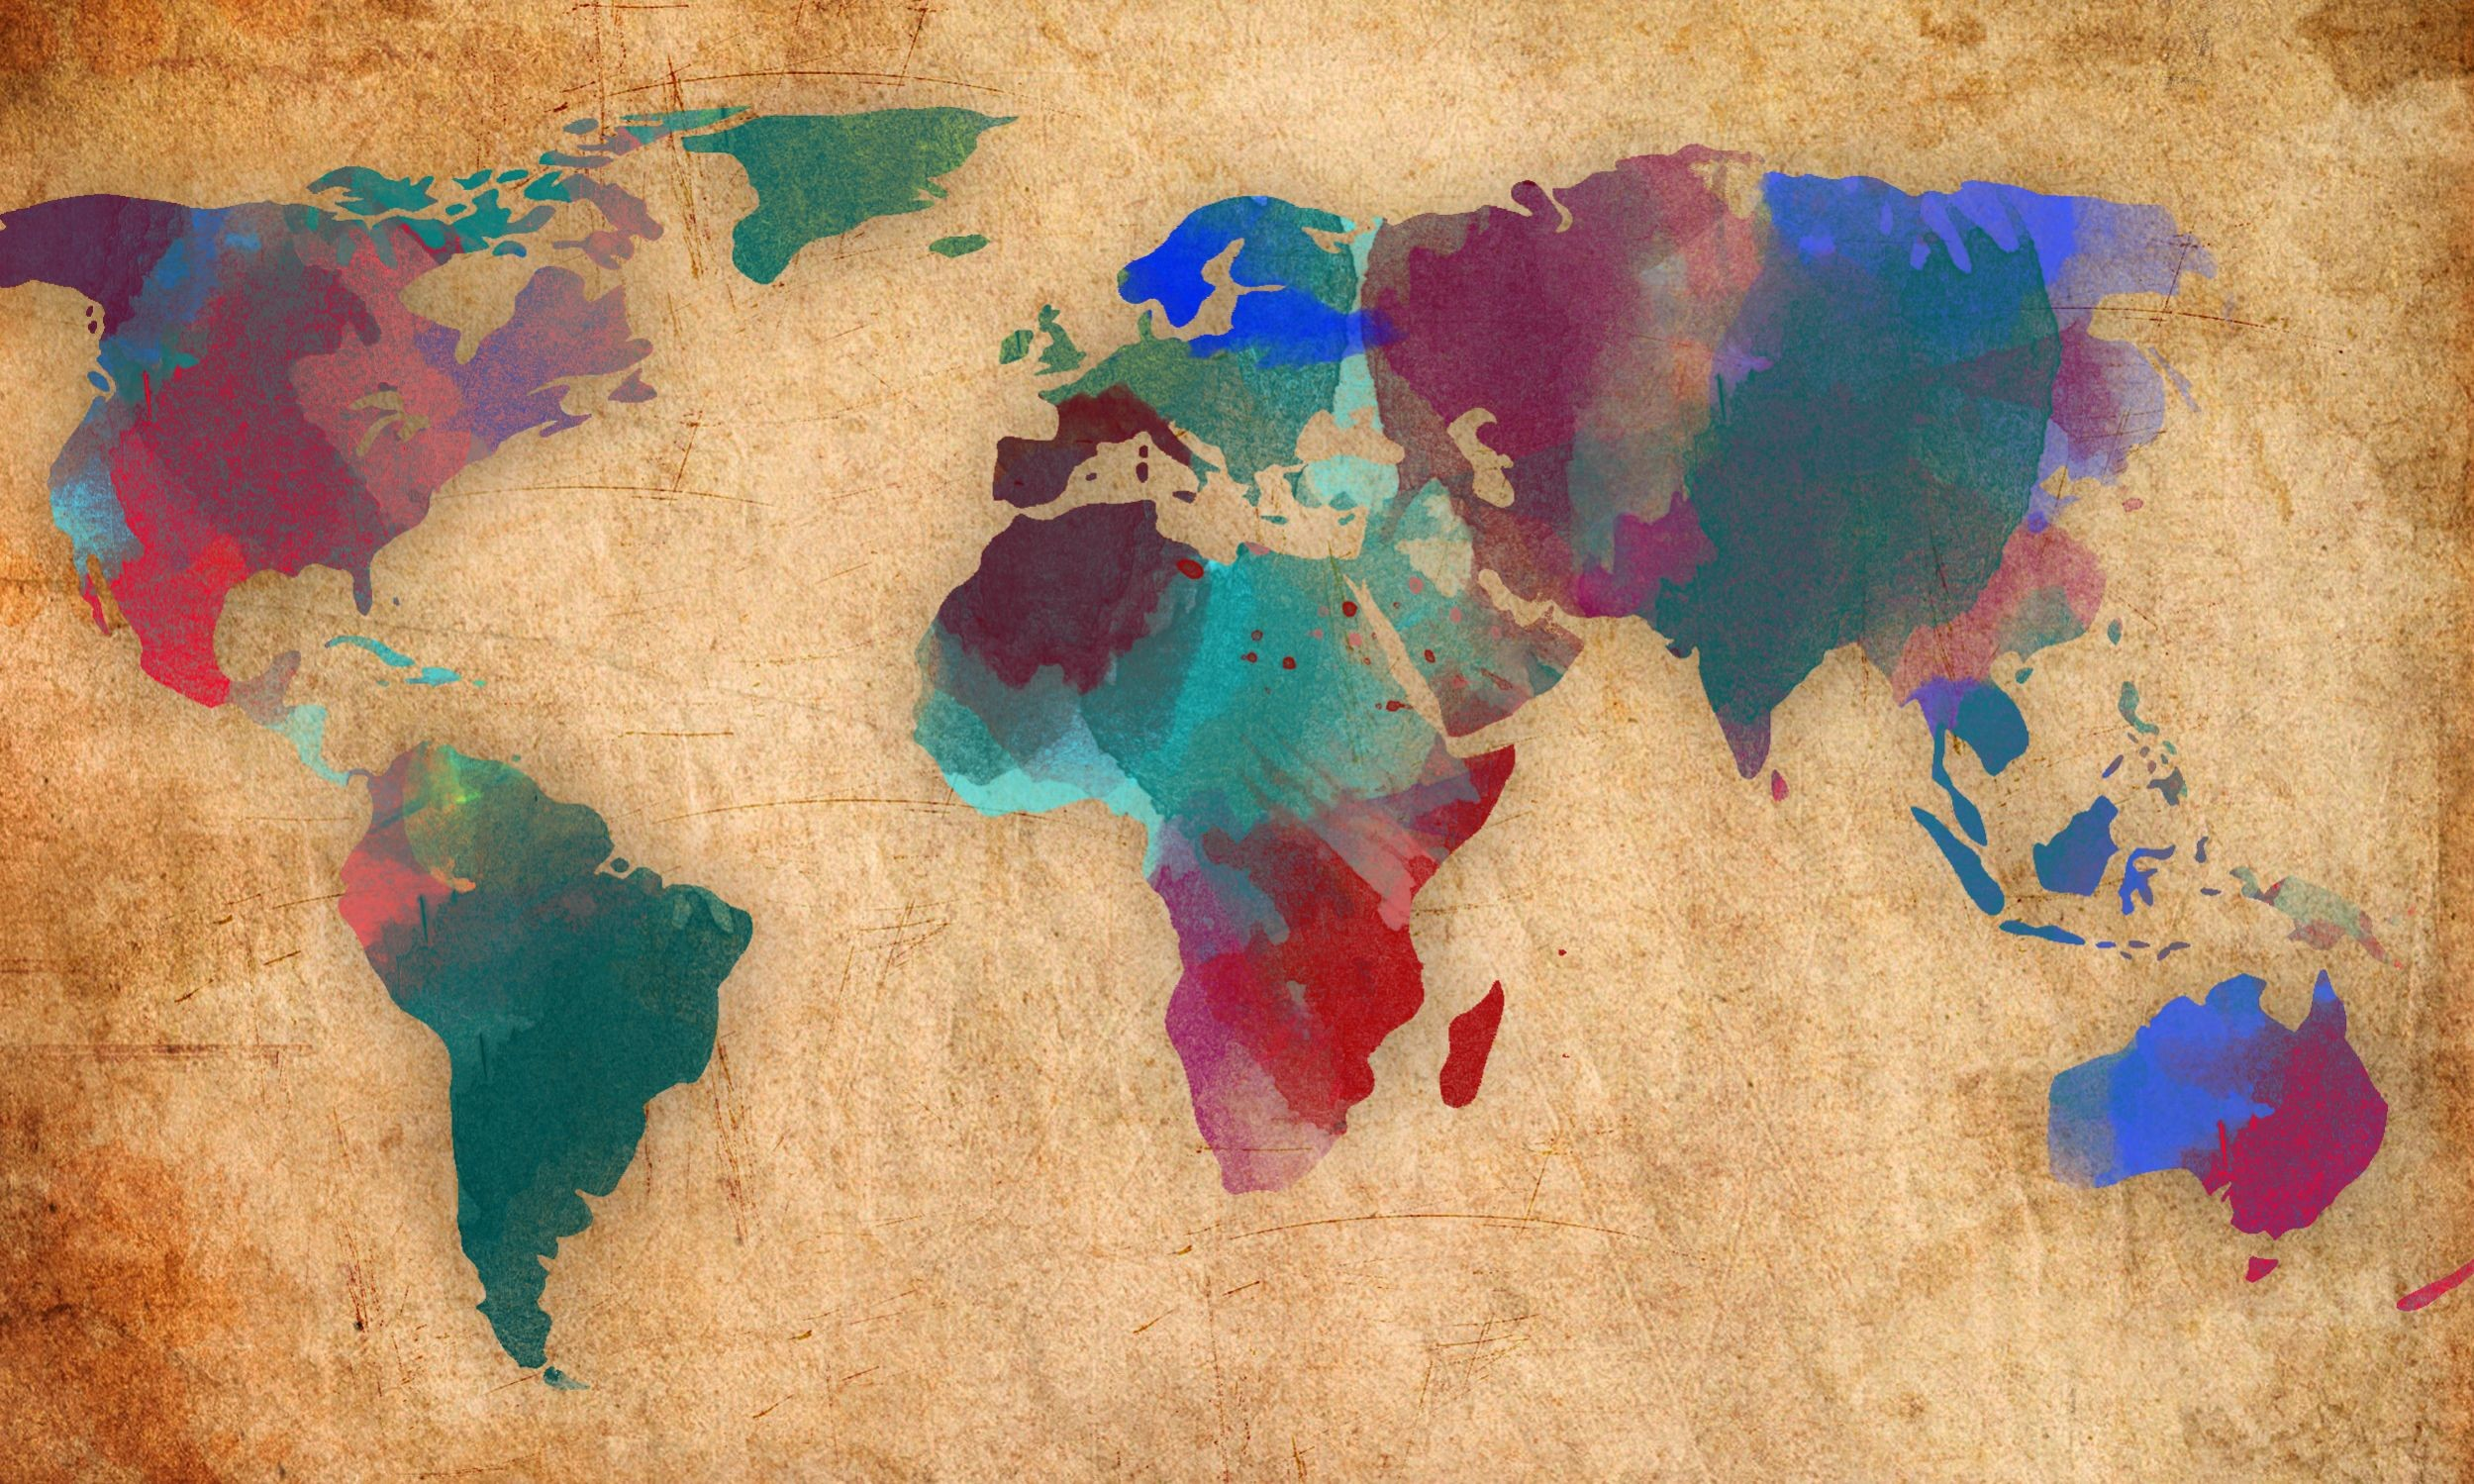 2499x1499 Watercolor World Map Wallpaper Download 2560x1600 Wide